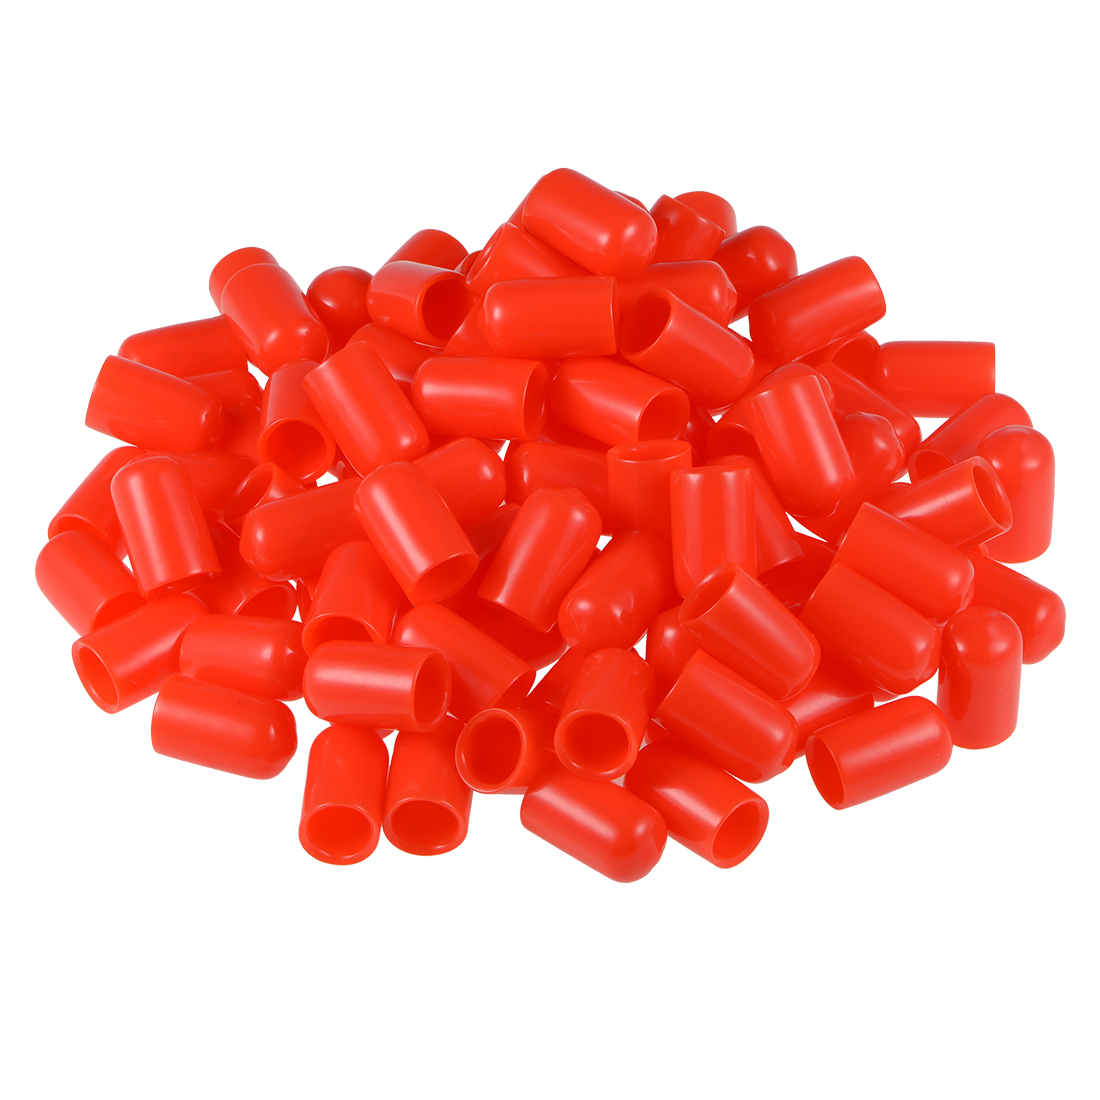 Screw Thread Protectors, 10mm ID 24.5mm Length Round End Cap Cover Red 100pcs